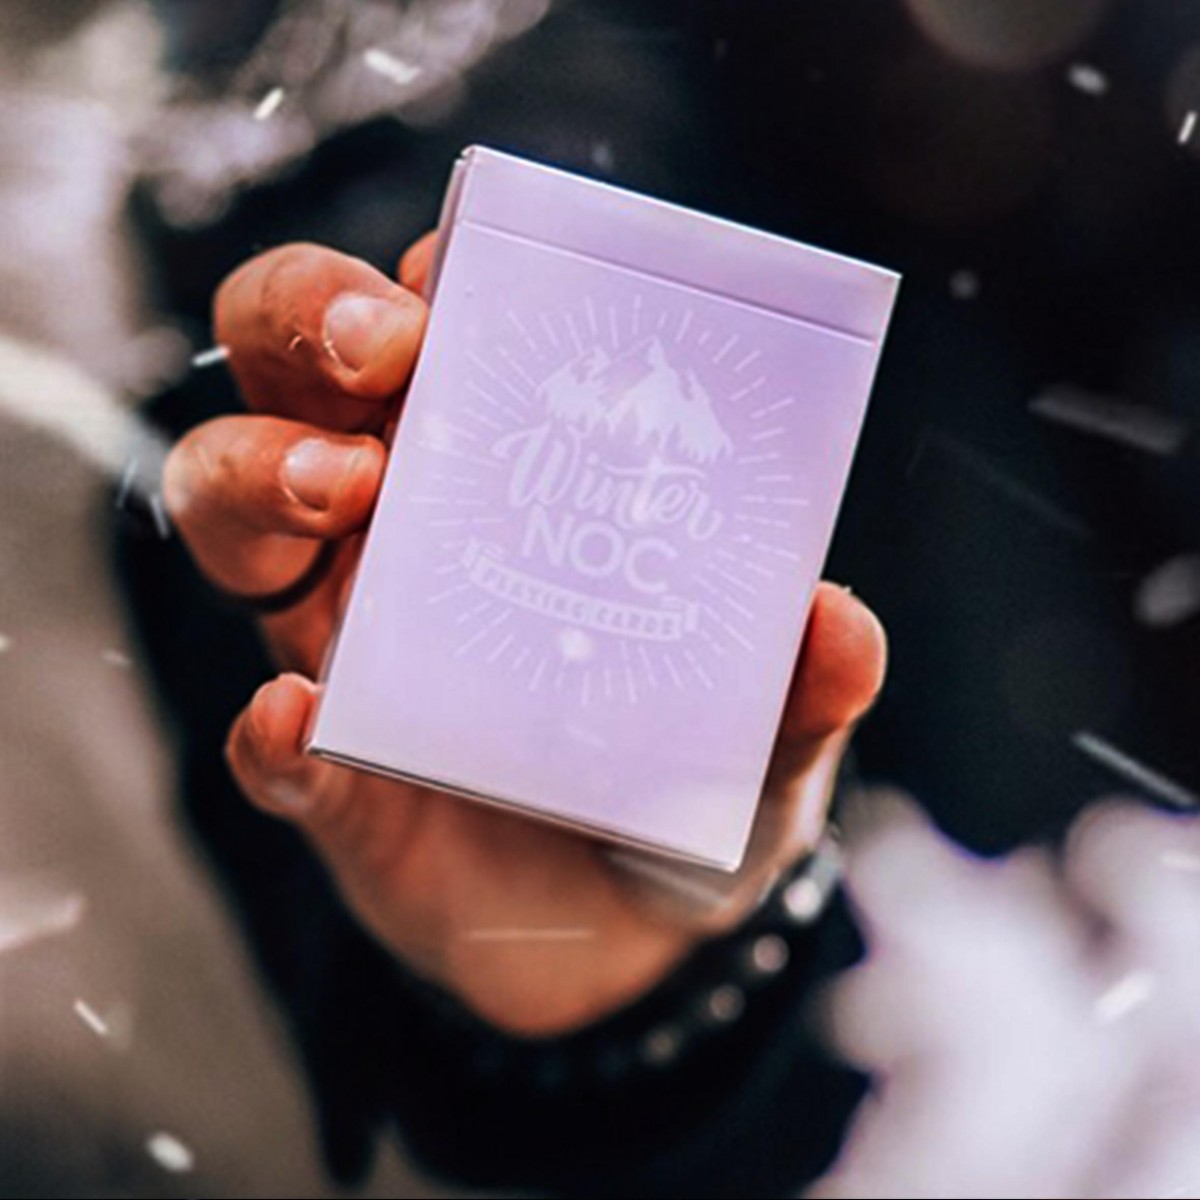 Winter NOC Lavender Dusk purple playing cards